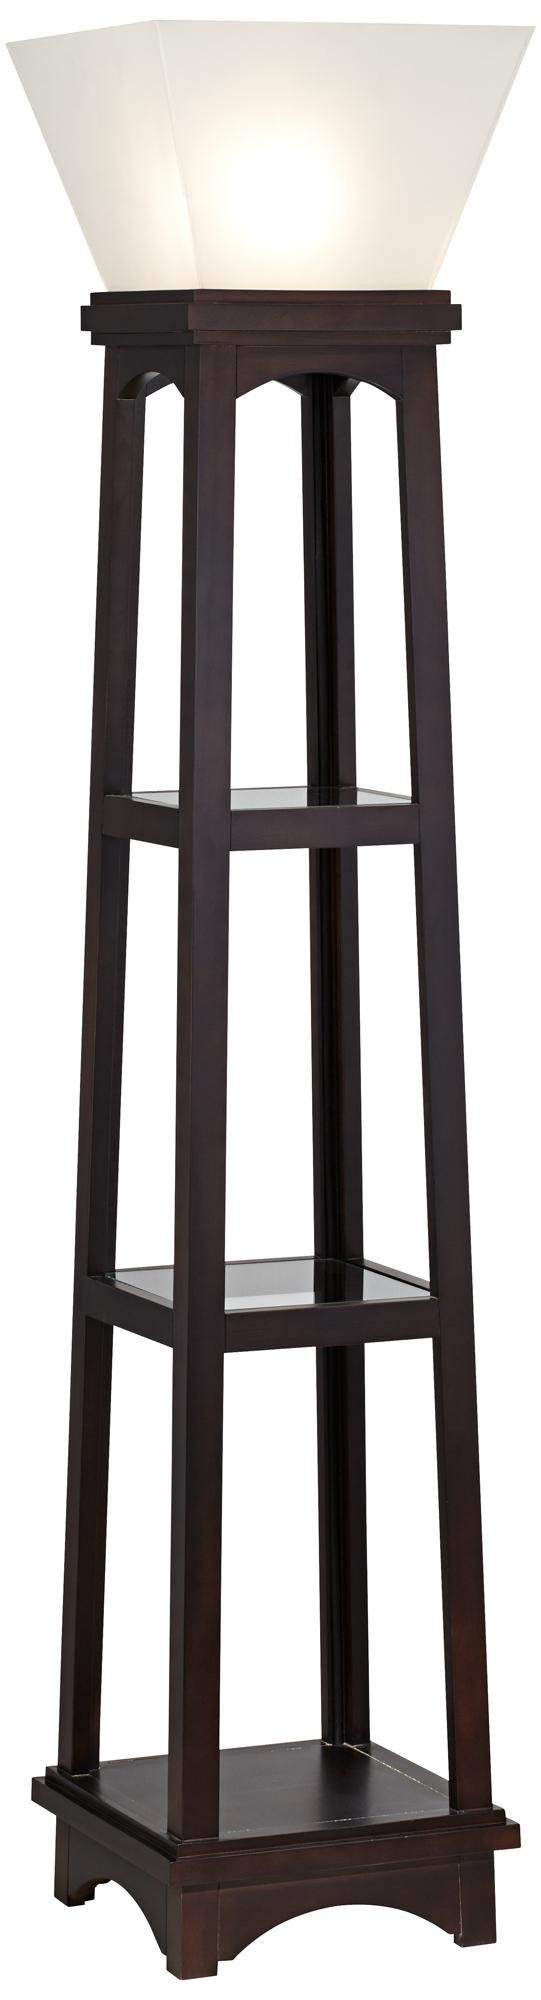 monaco espresso 3 shelf etagere torchiere floor lamp With torchiere floor lamp with shelves